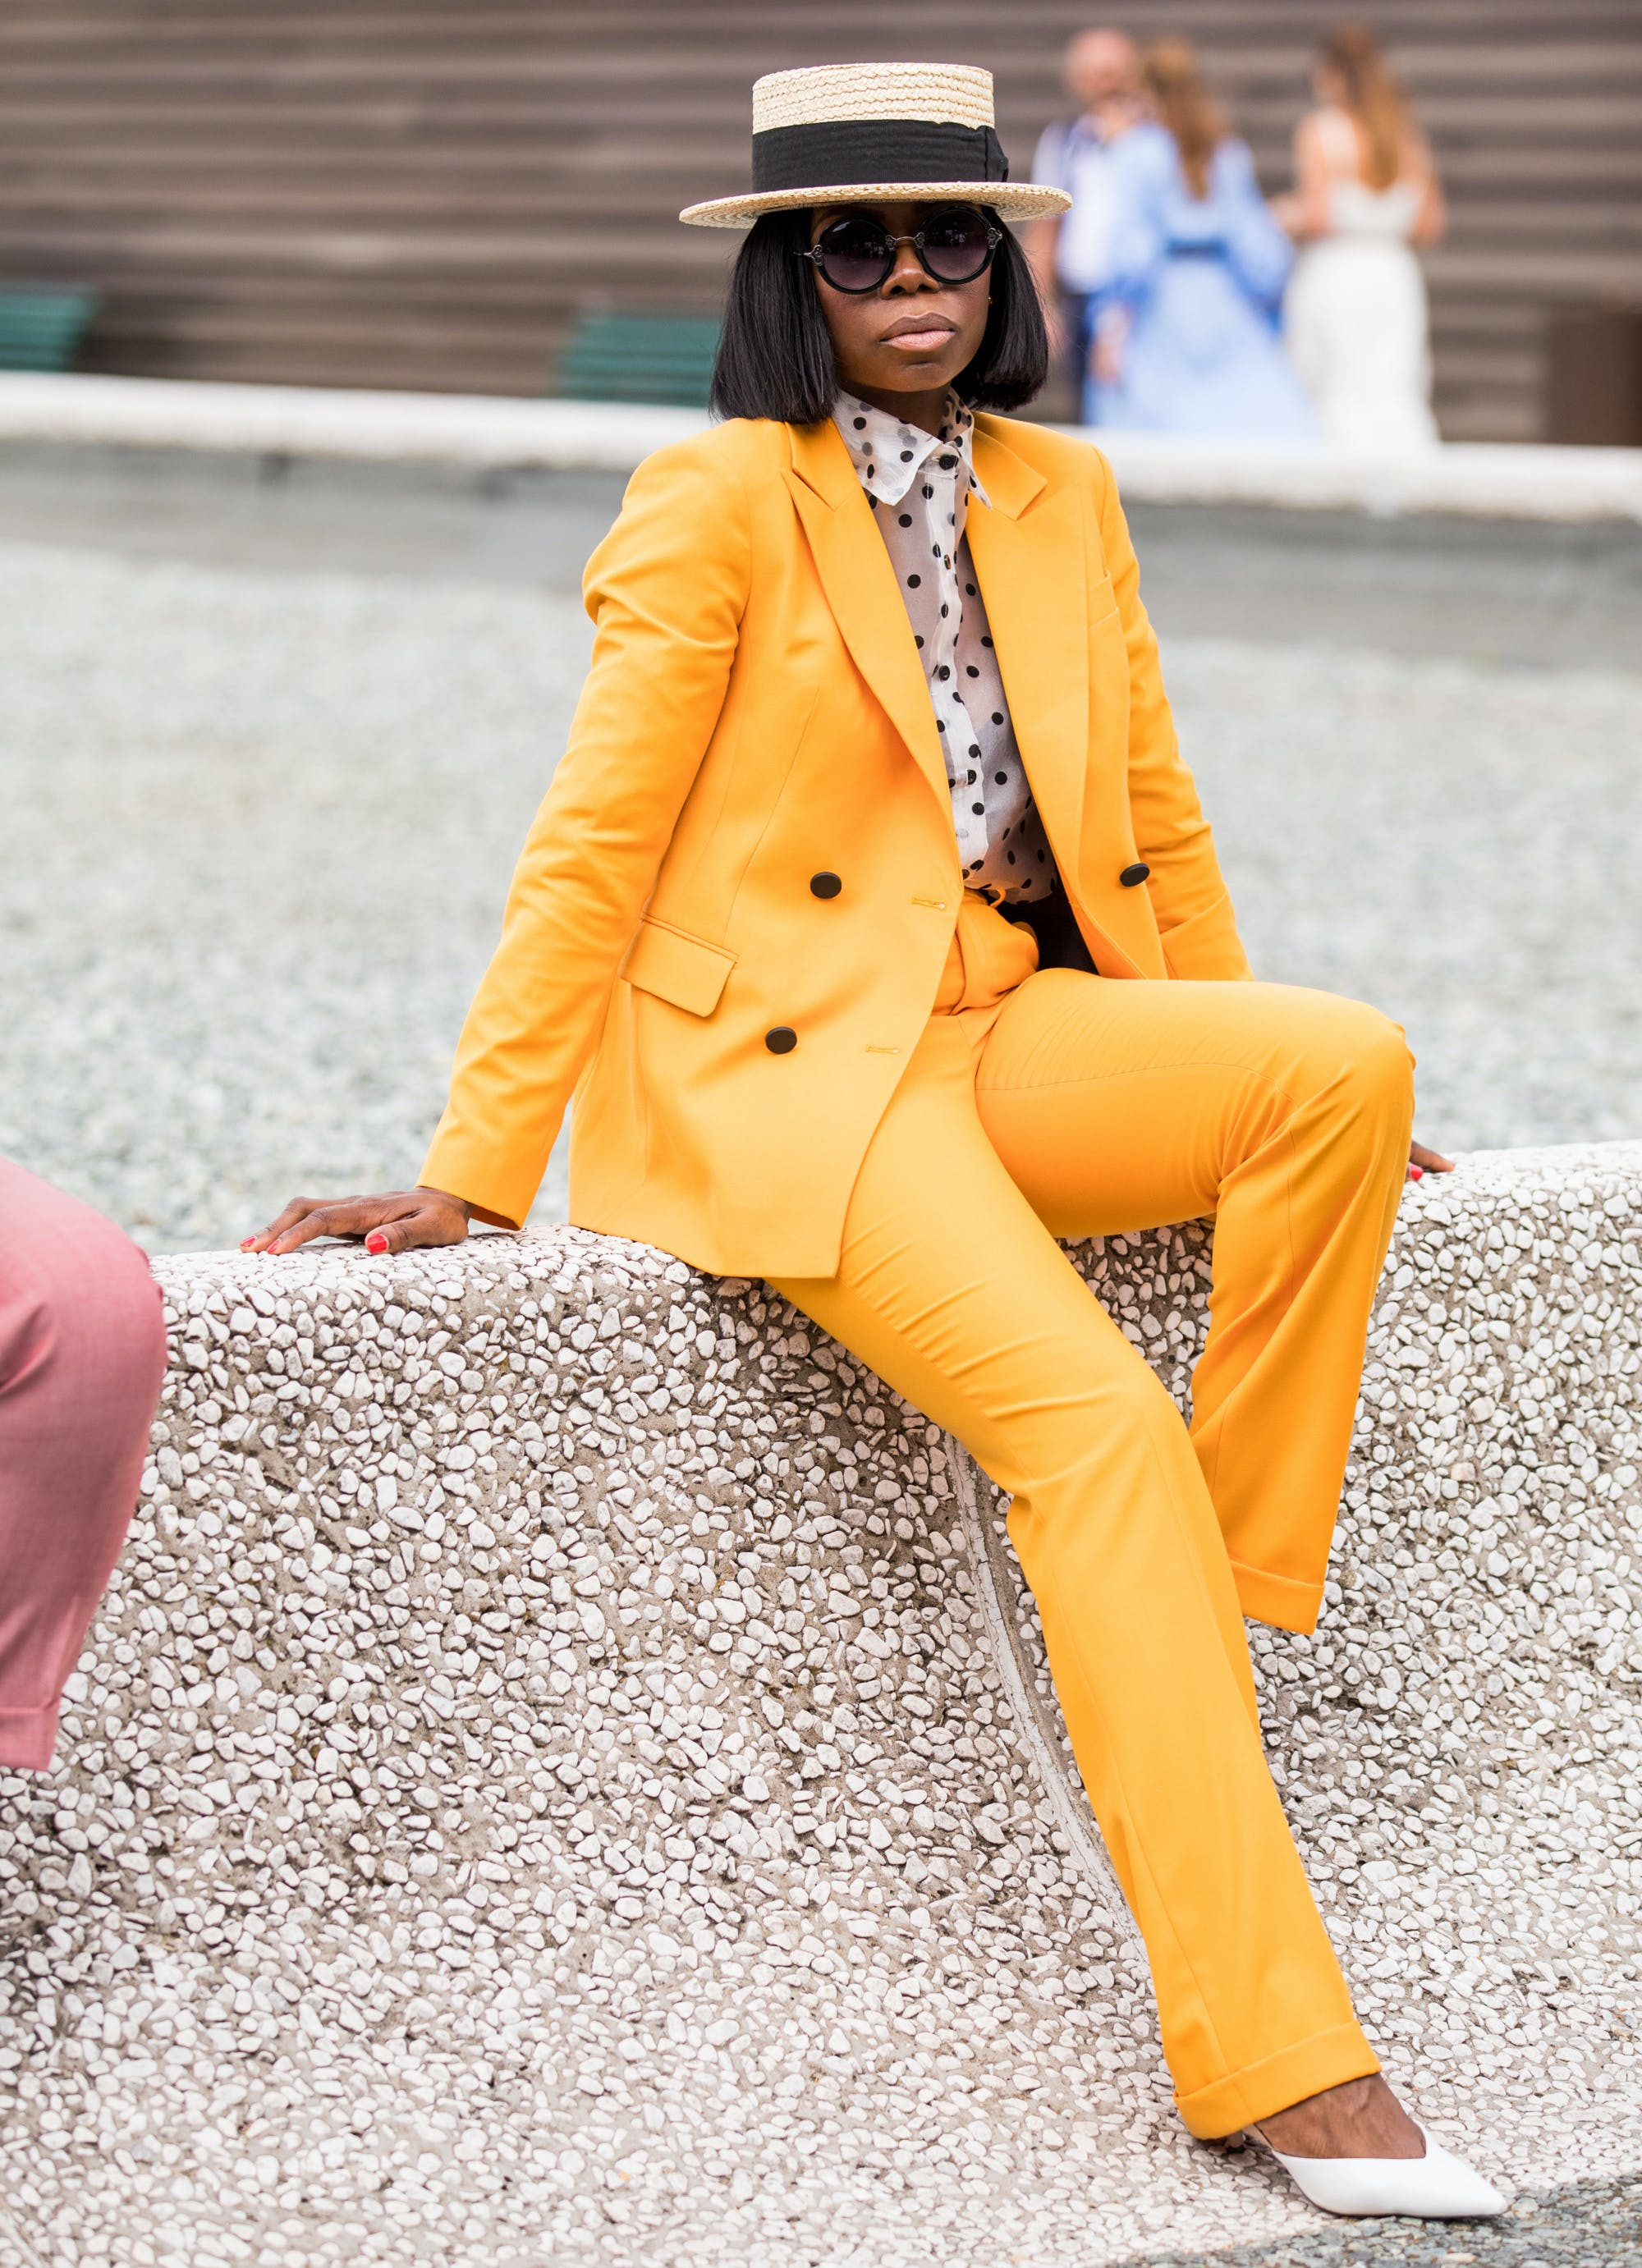 a woman wearing a bright yellow orange suit